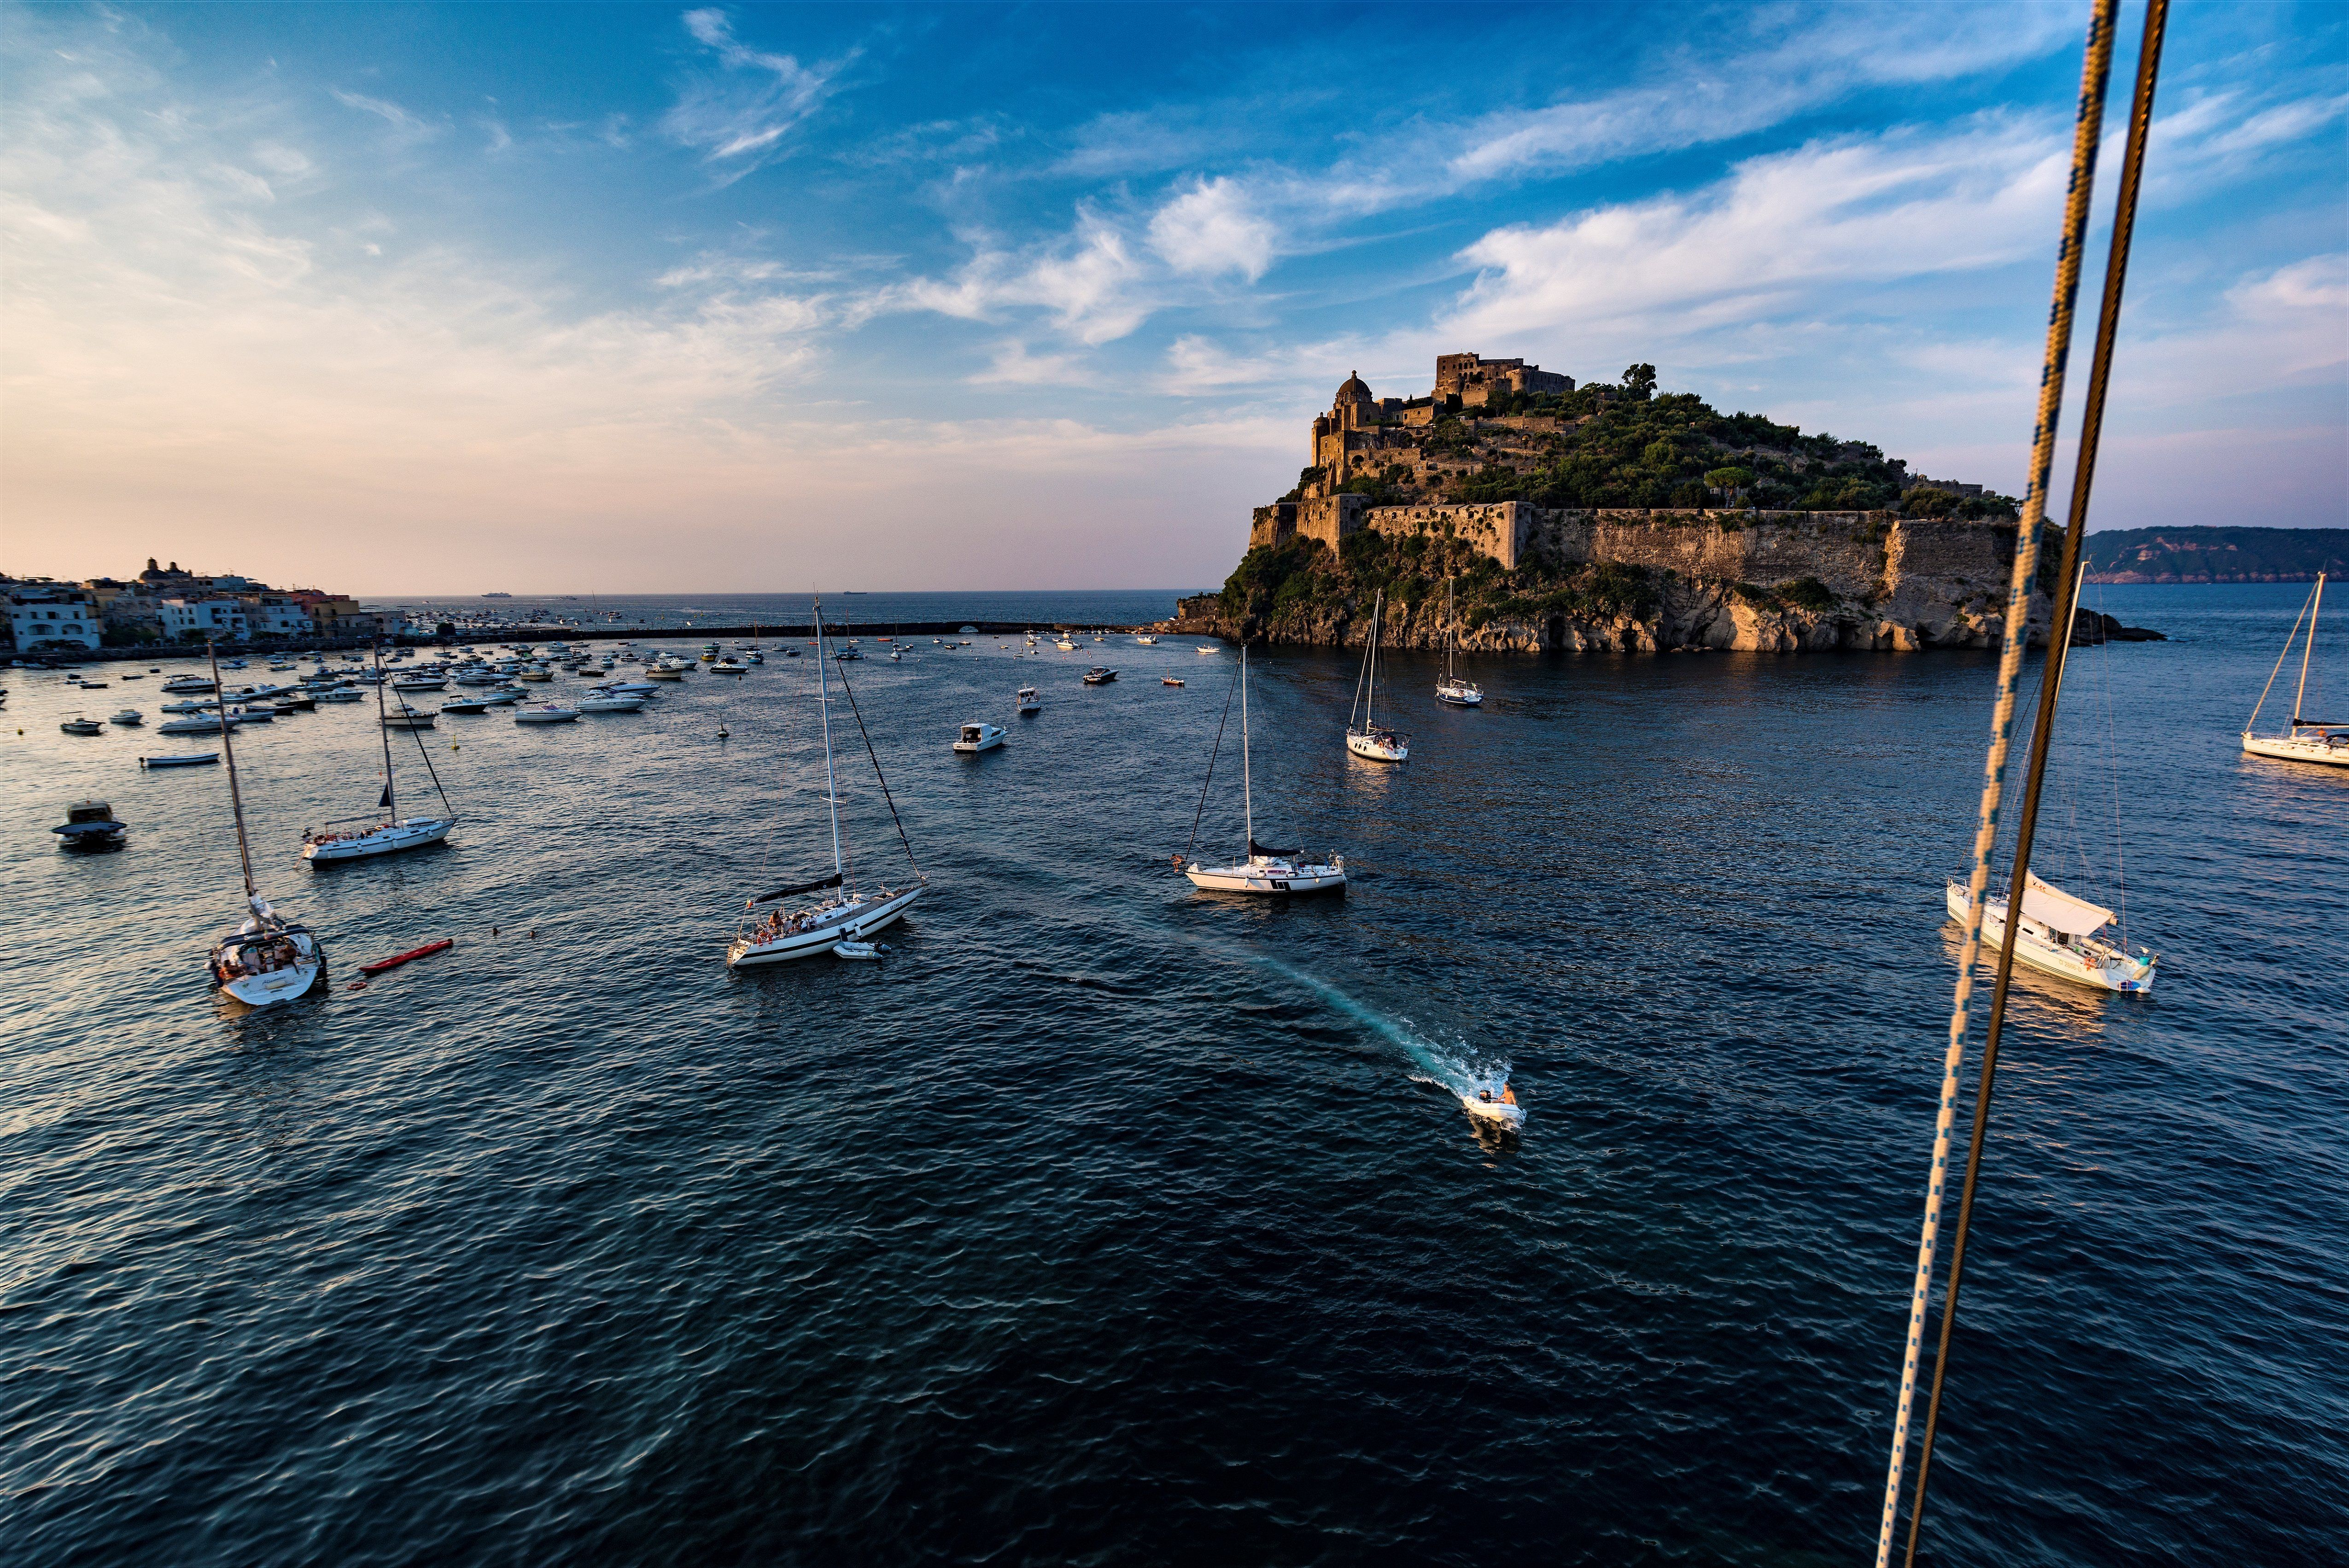 Castello Aragonese. Ischia. Campania. Italy. (Photo by: Marka/UIG via Getty Images)